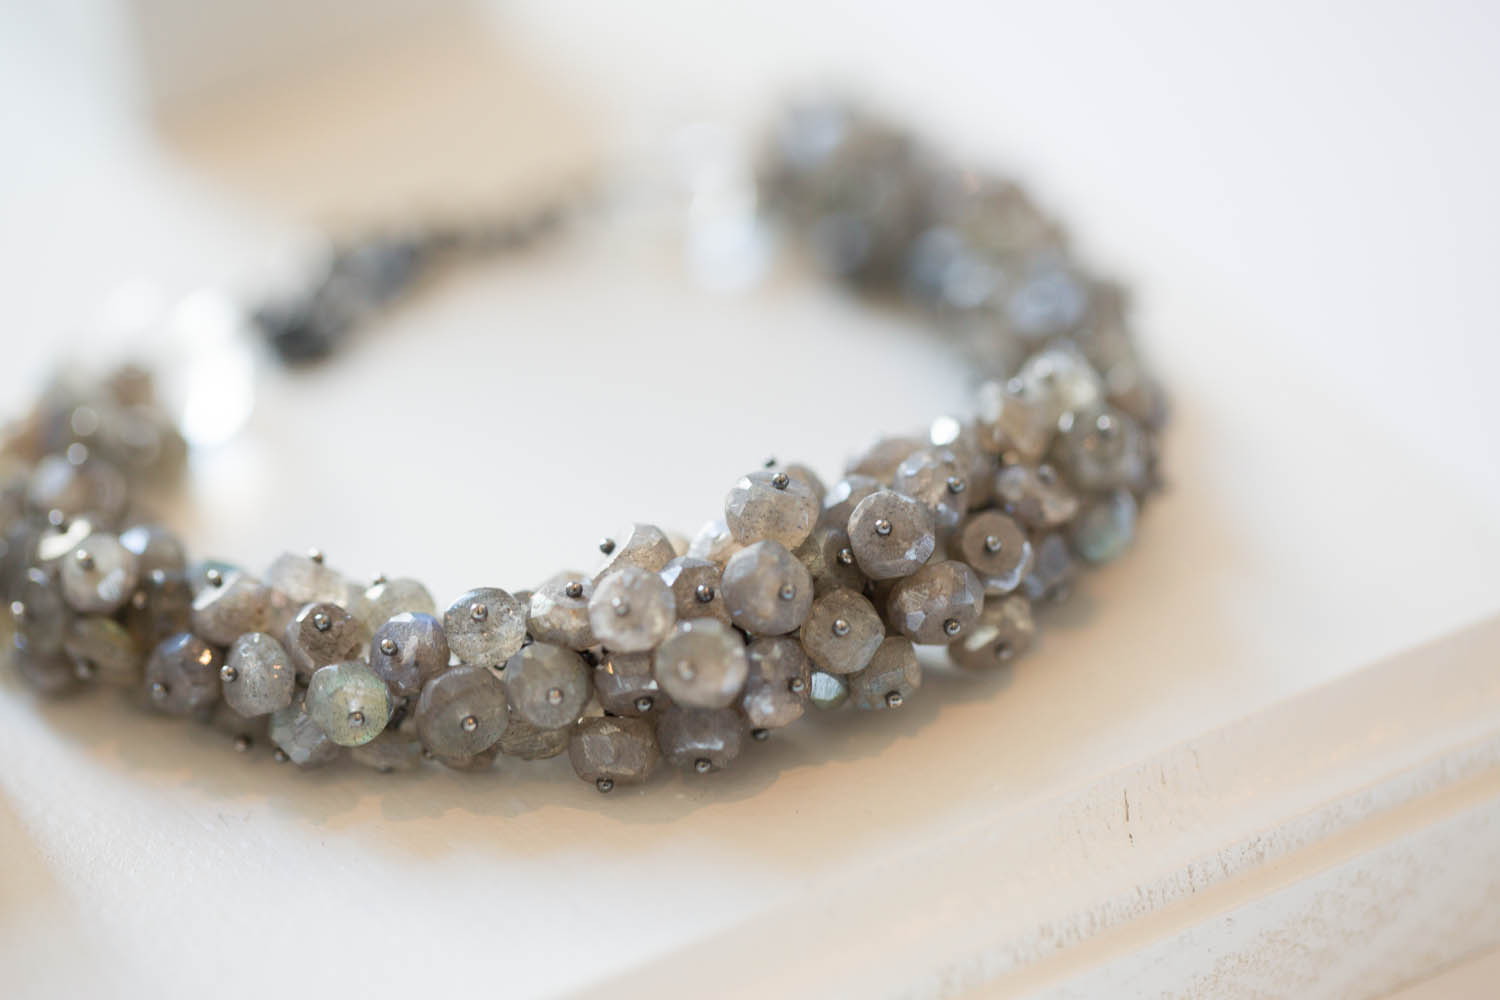 Michelle Pajak-Reynolds's Undina Collection: Luna bracelet handcrafted in labradorite, rock crystal quartz and oxidized recycled sterling silver. Photo credit: Julie Stanley/JuleImages LLC